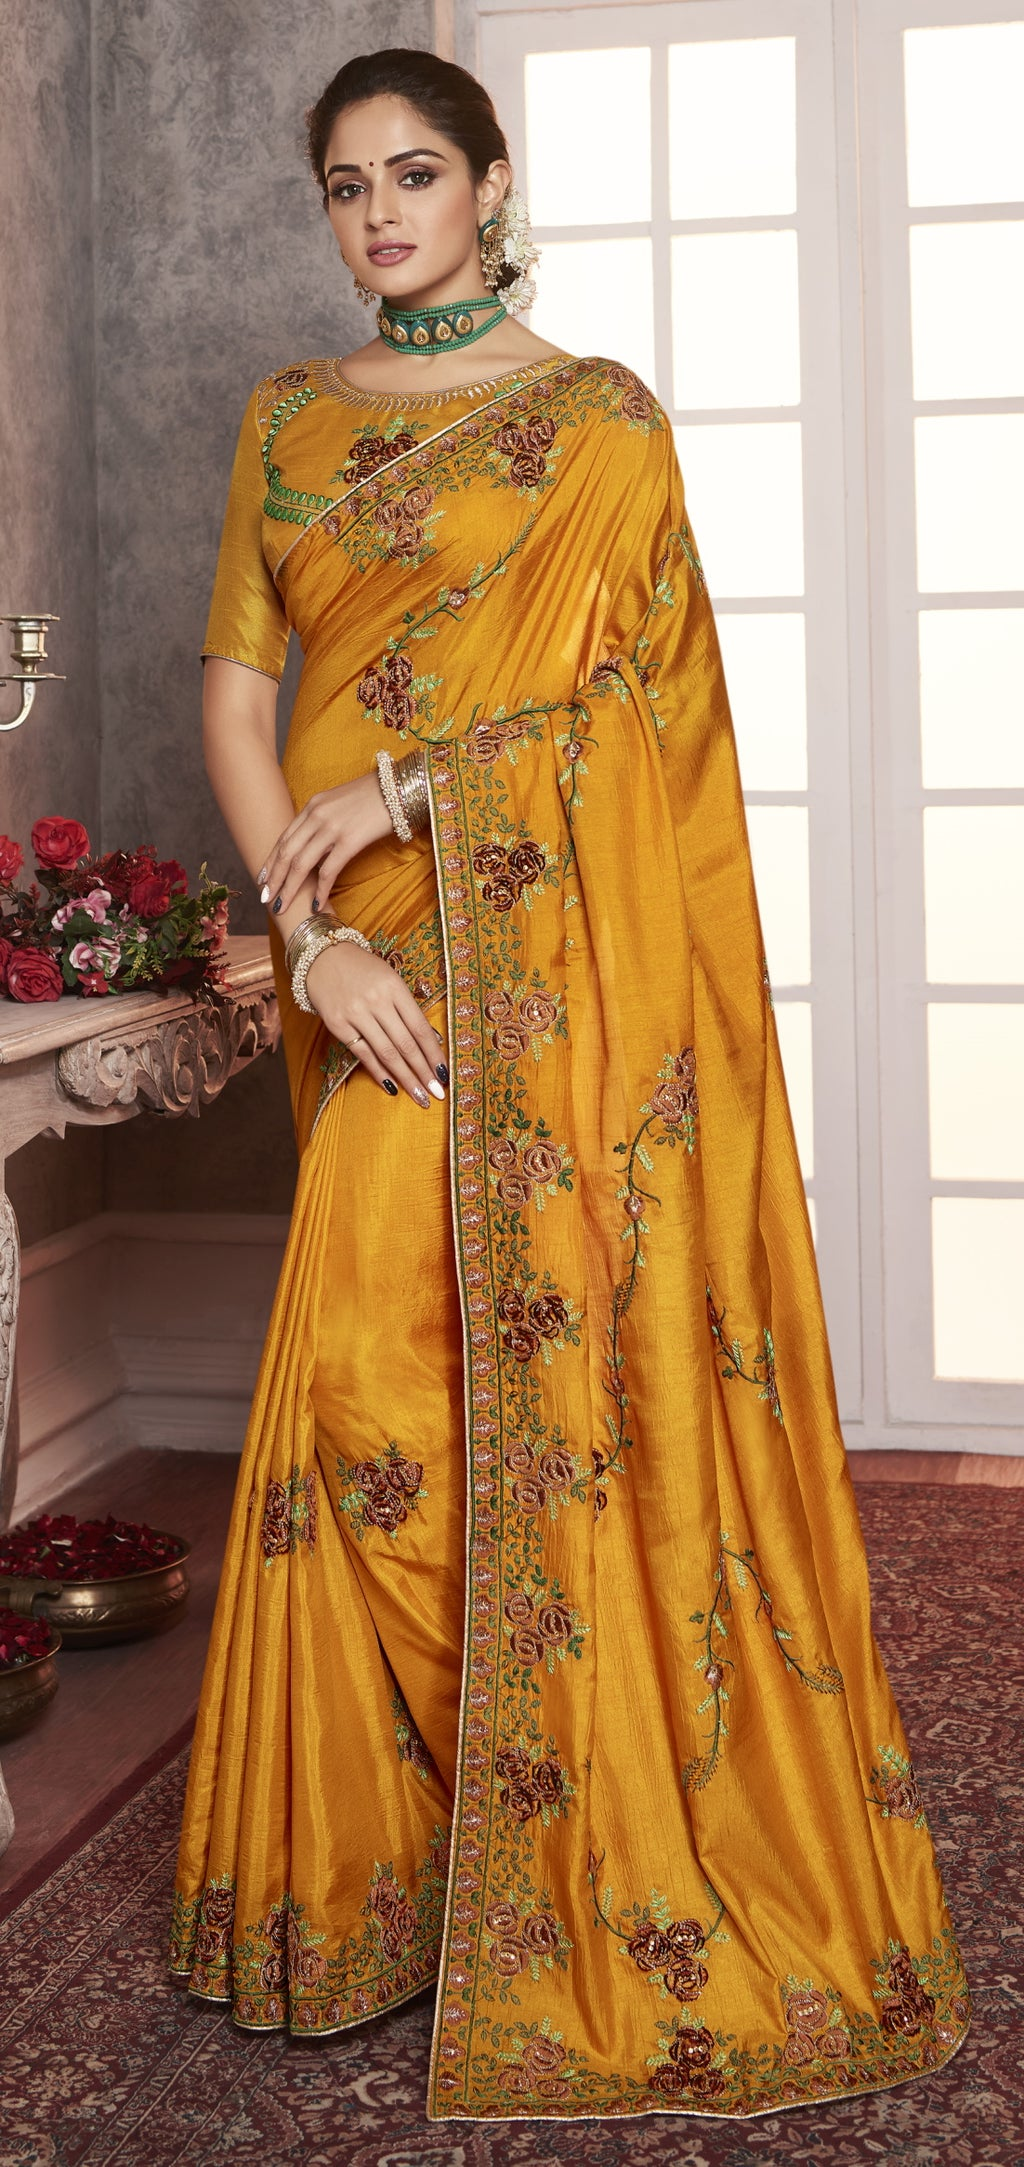 Golden Yellow Color Wrinkle Crepe Pretty Office Party Sarees NYF-6072